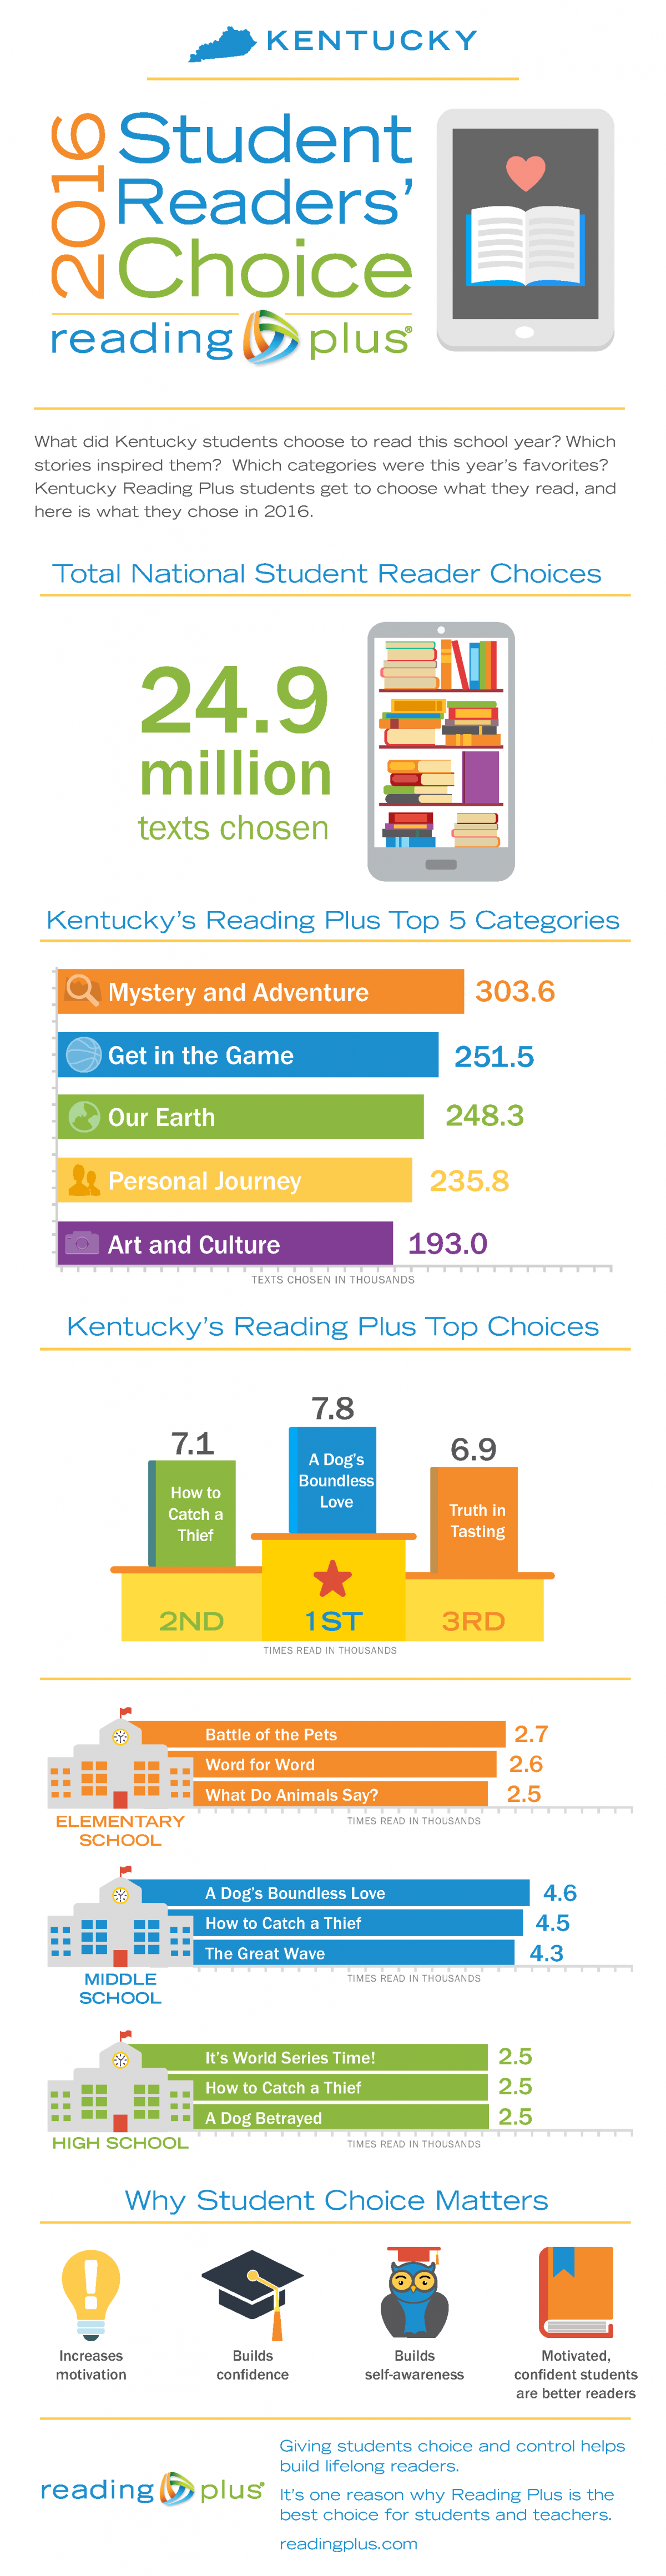 Reading Plus Readers Choice Infographic KY